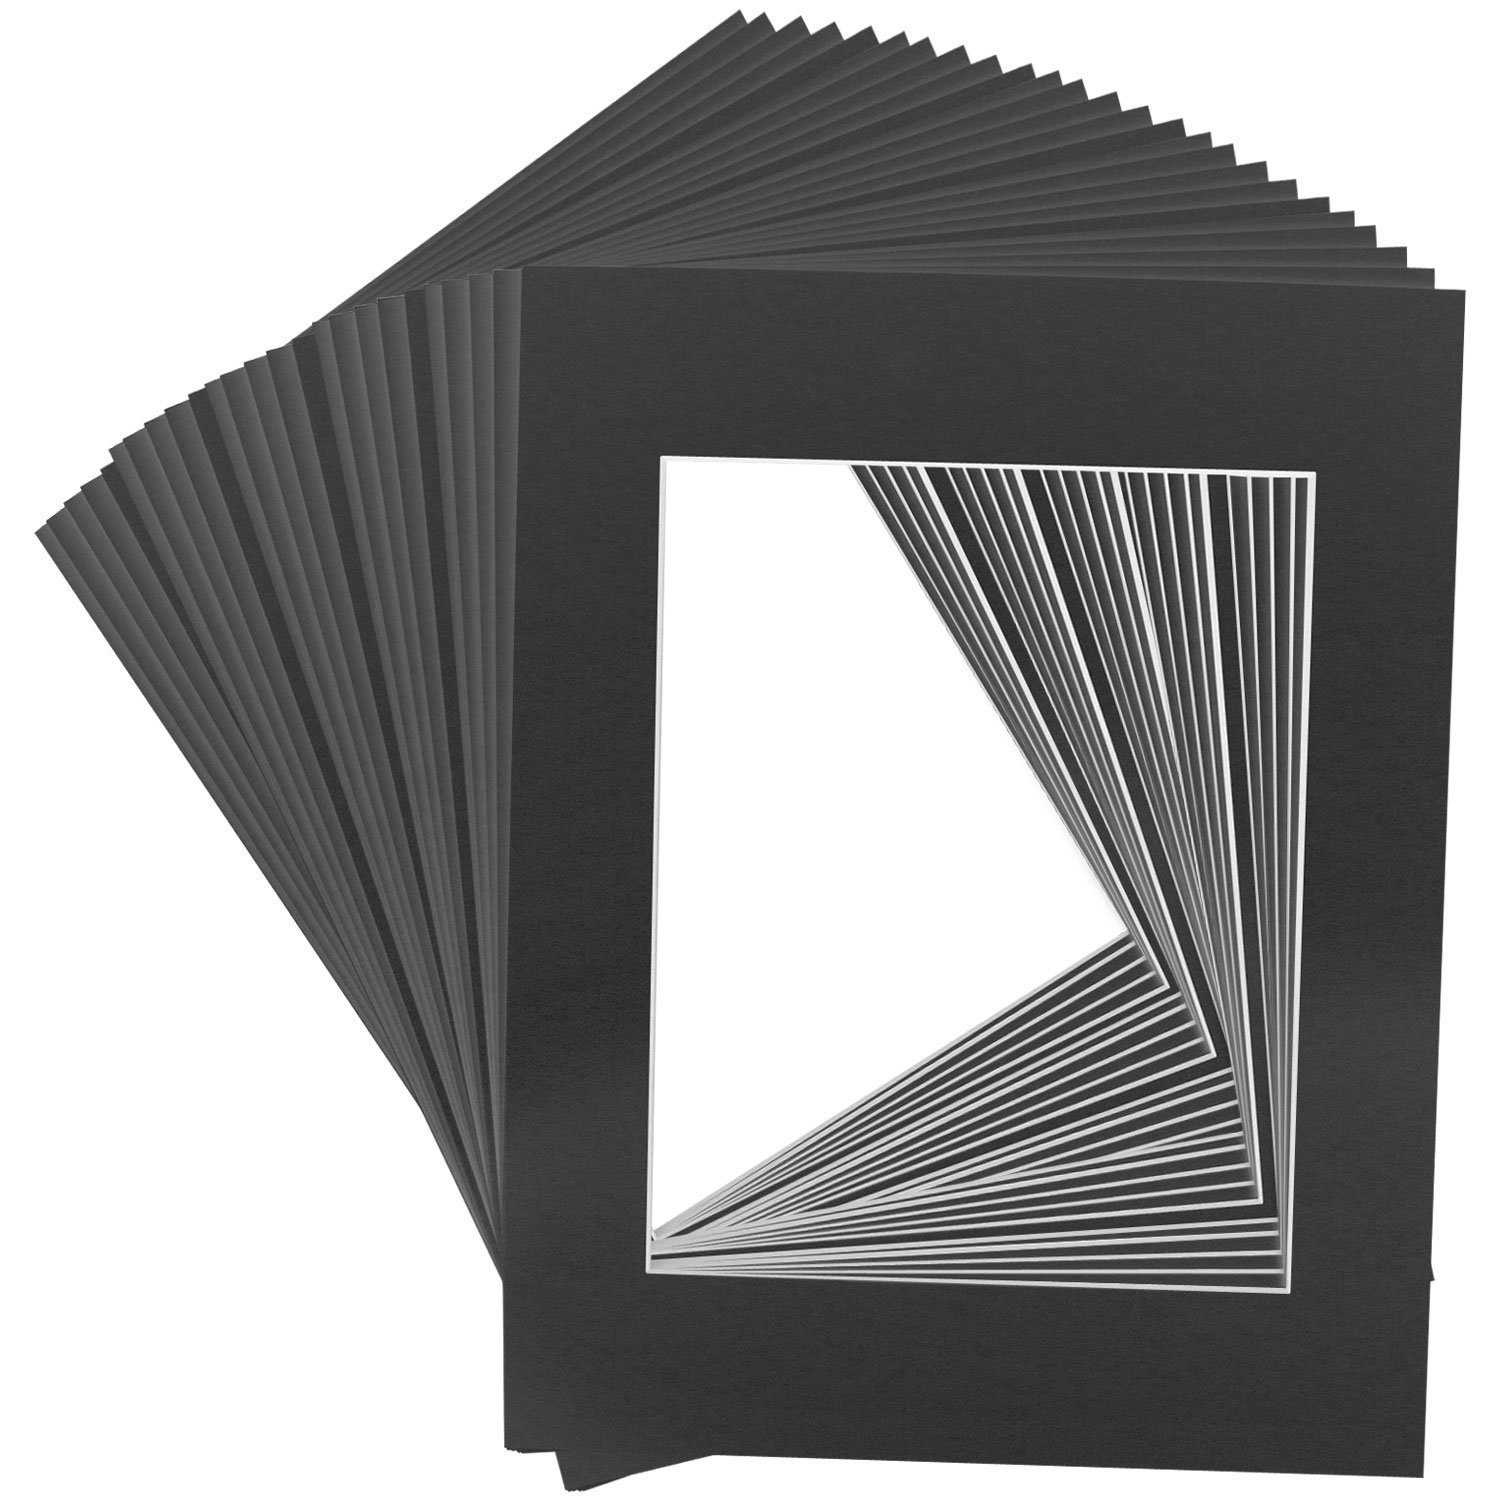 Mat Board Center Crescent 11x14 Black Picture Mat Sets for 8x10 Photo.